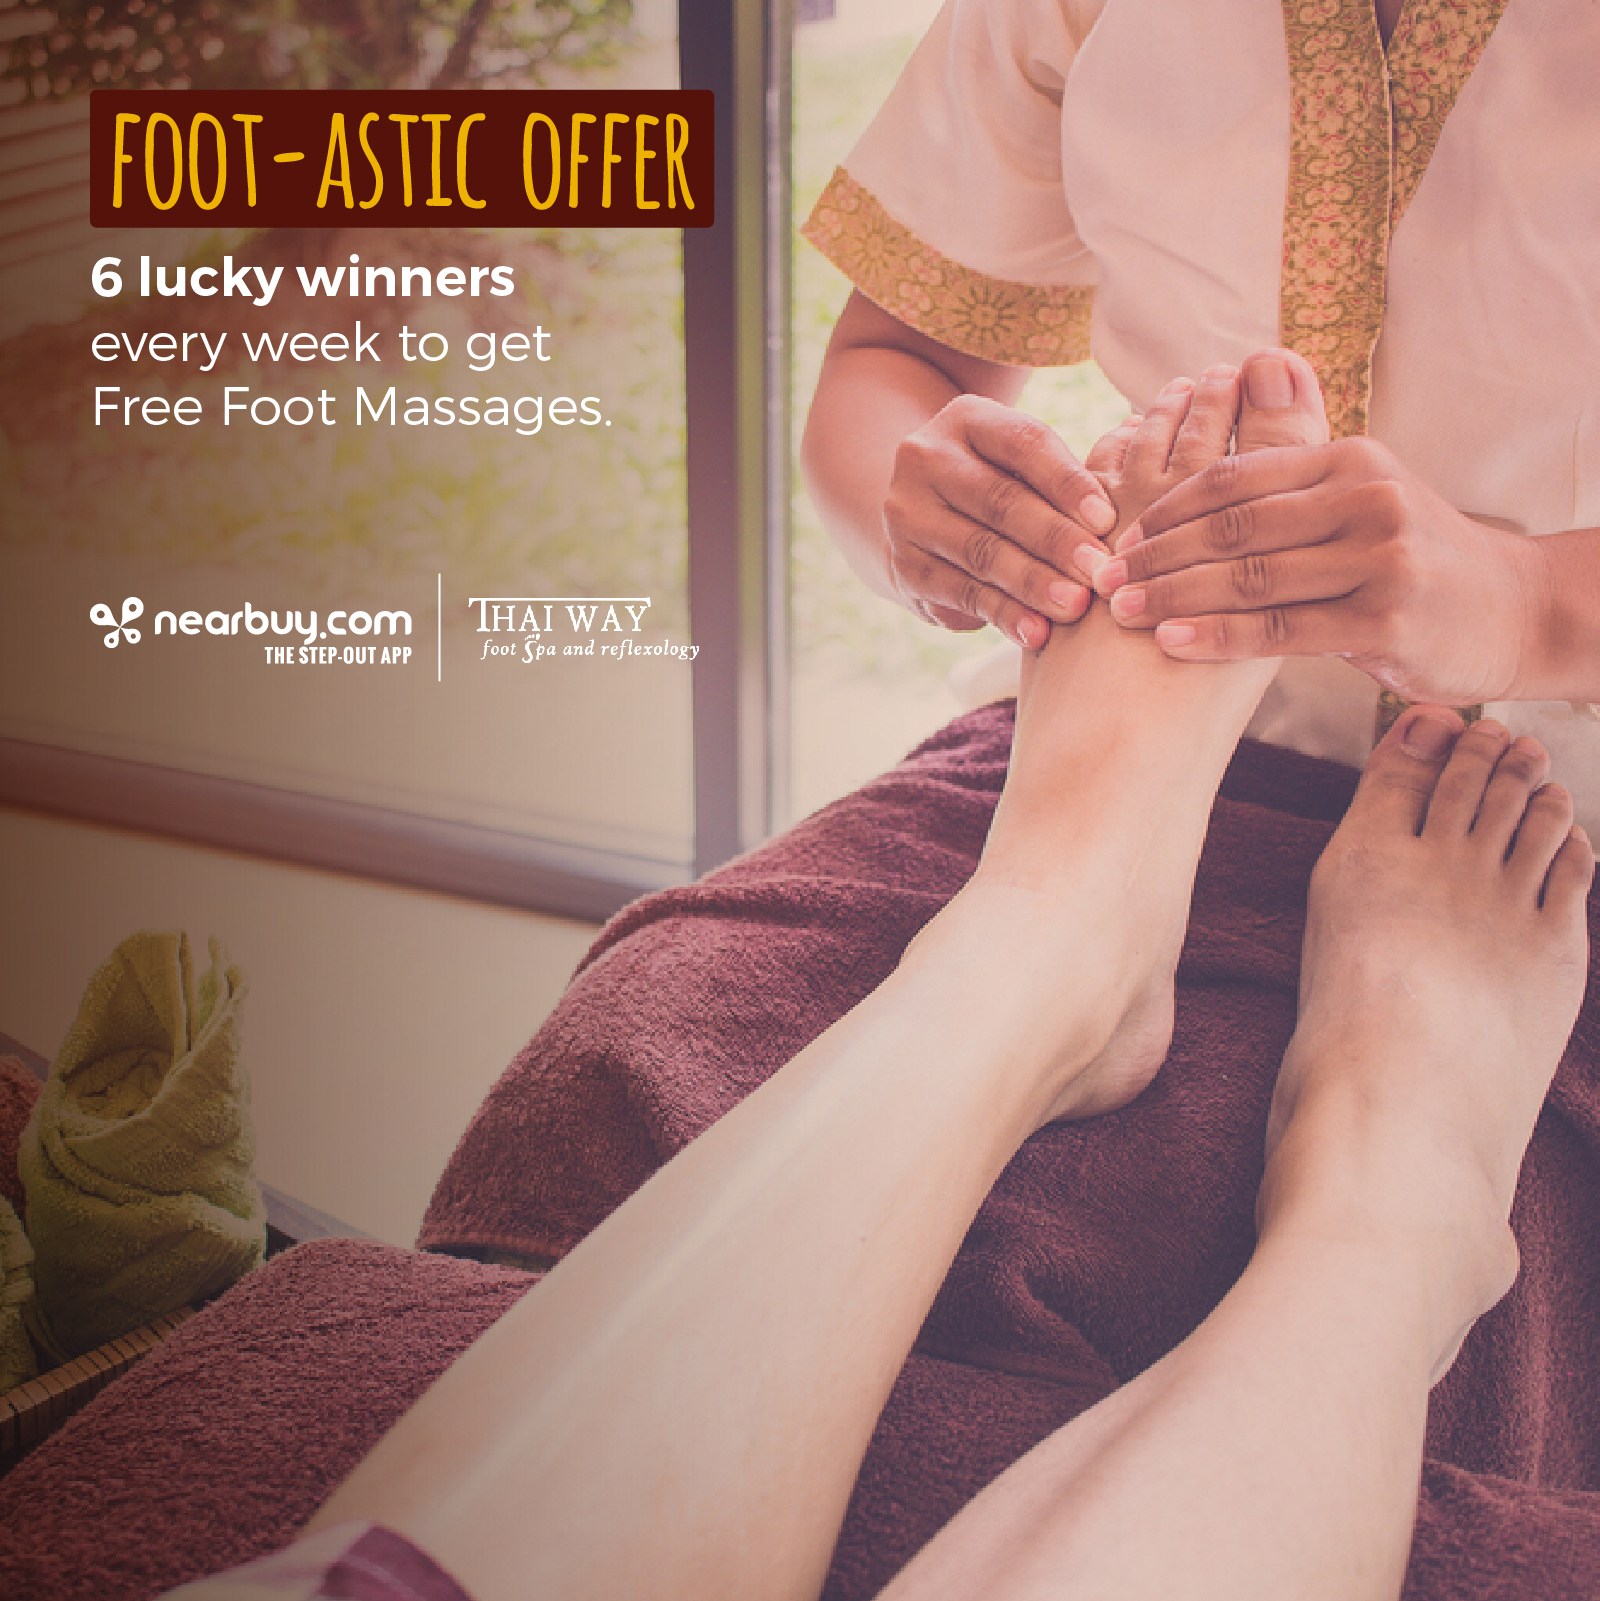 Winners - Free Foot Massages - Thai Way Foot Spa